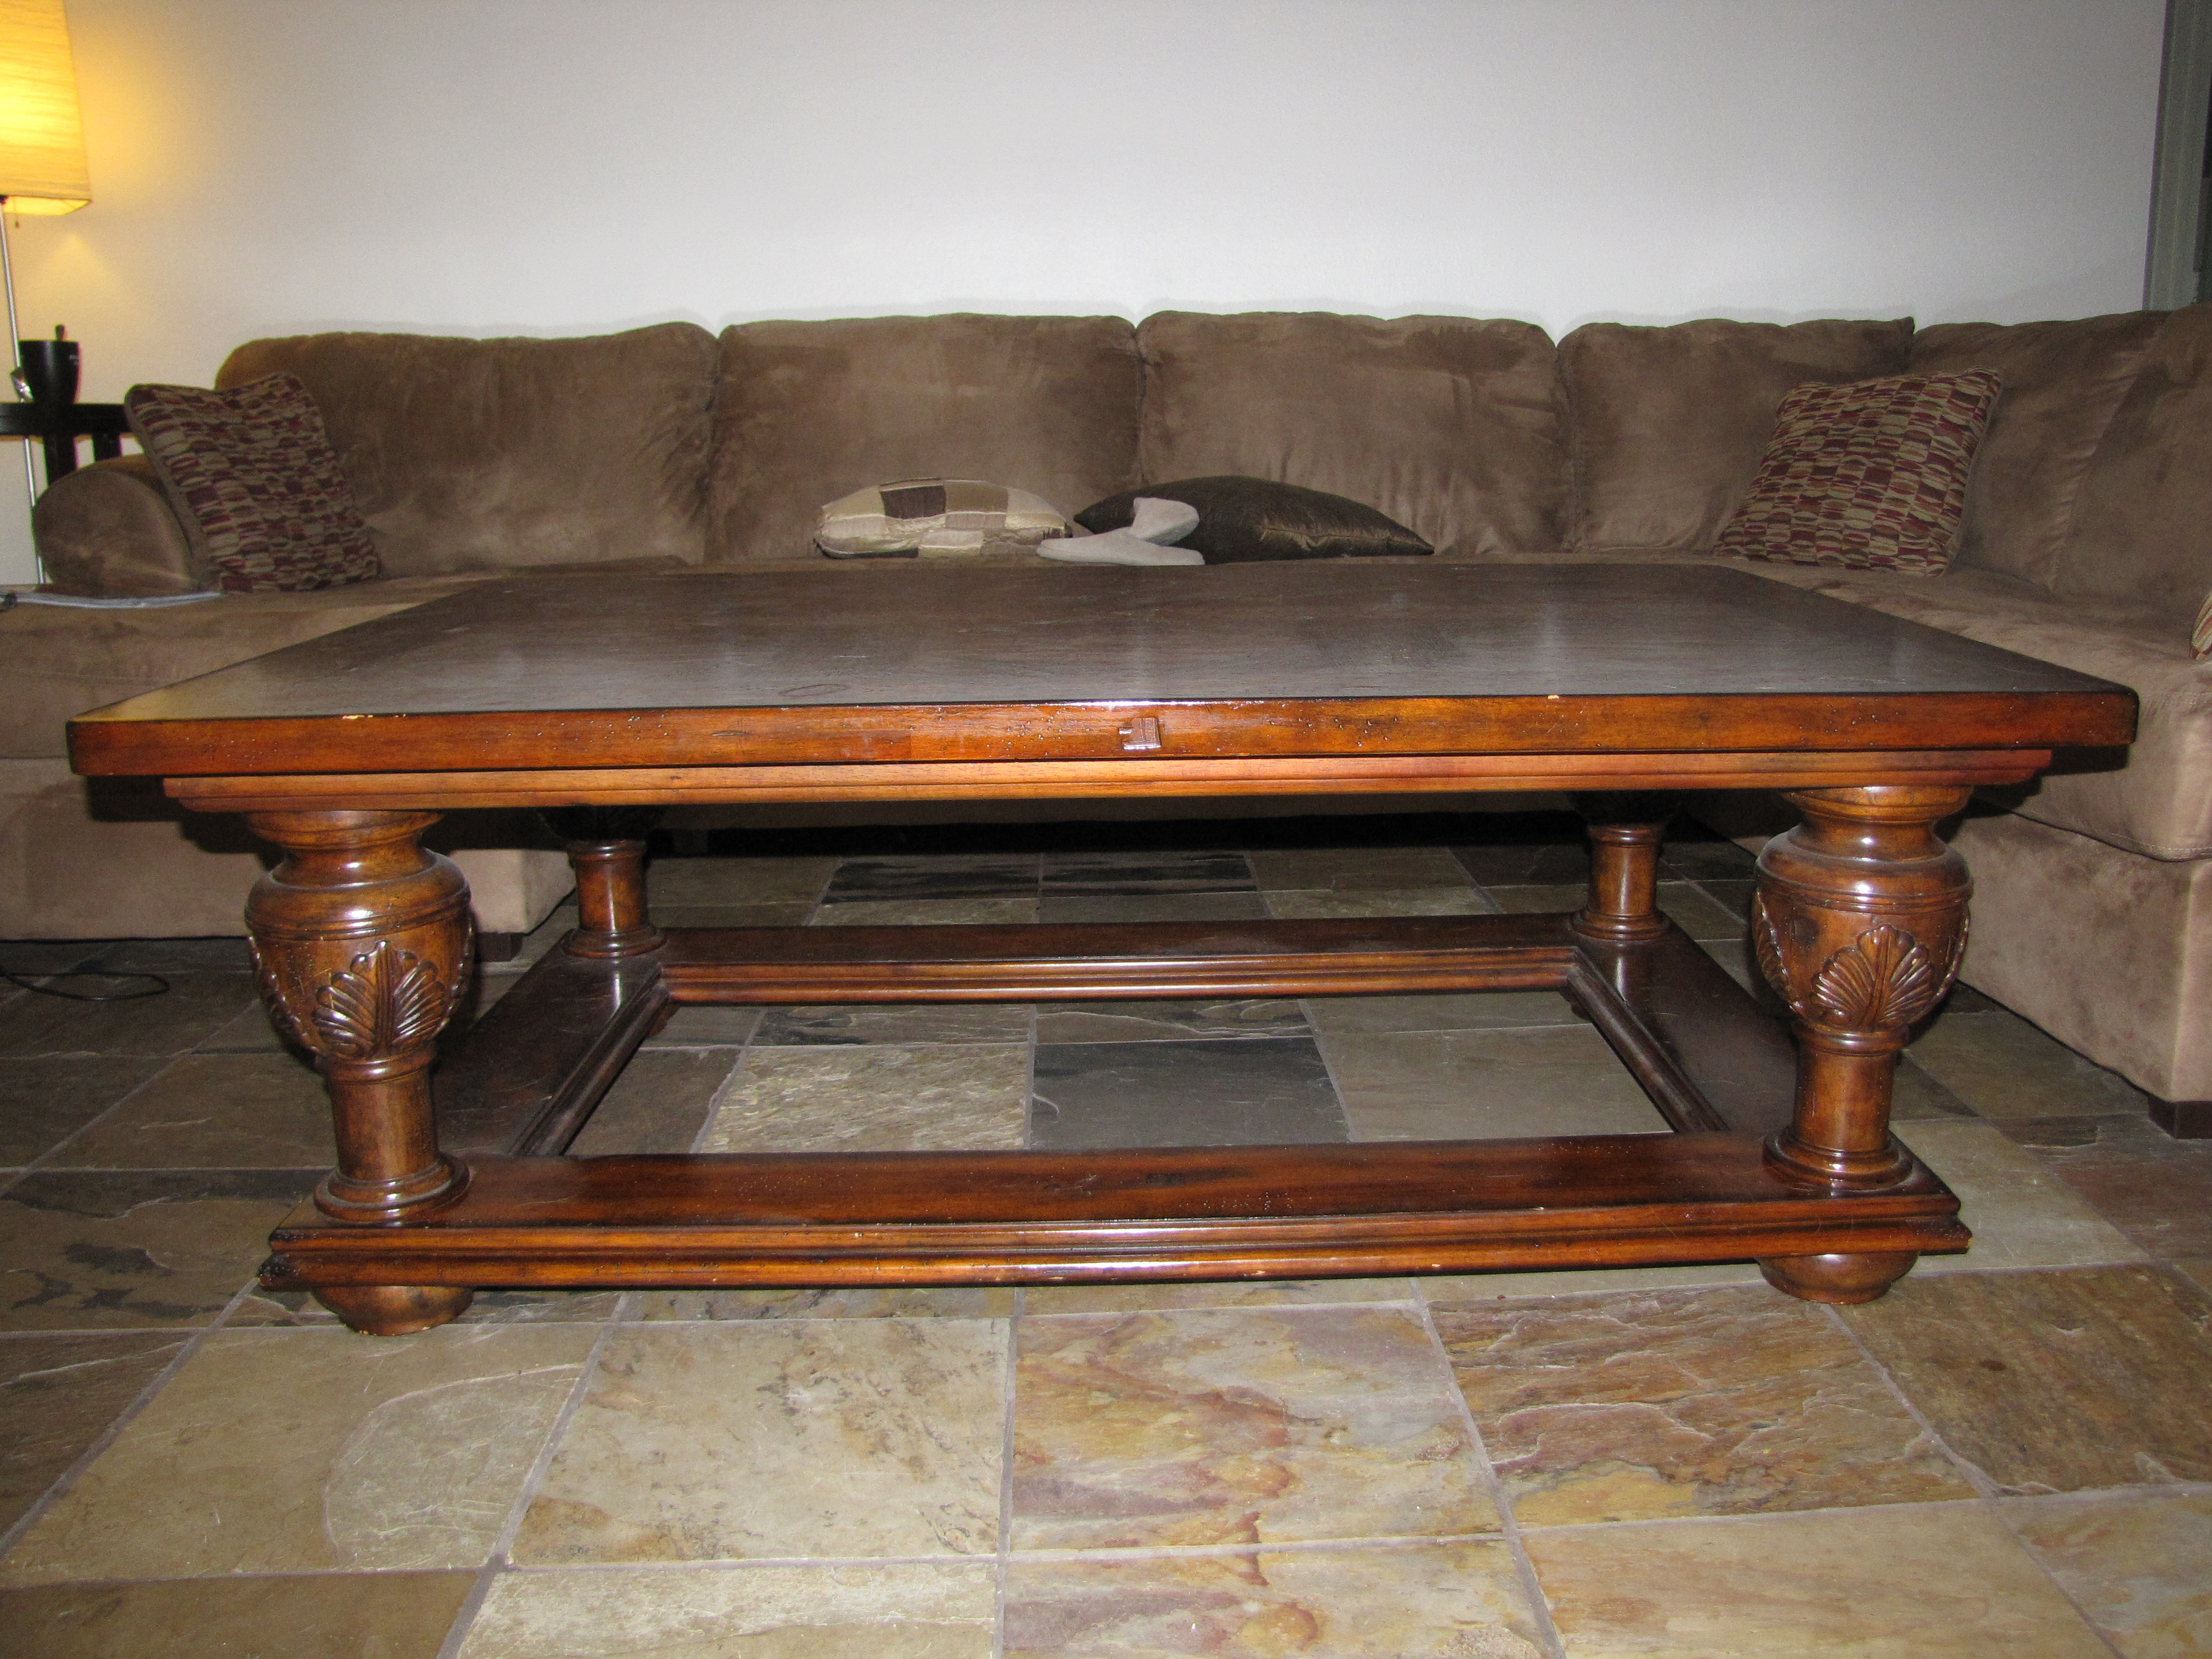 Couchtisch Dunkel Large Wood Coffee Table | Forsaleinscottsdale